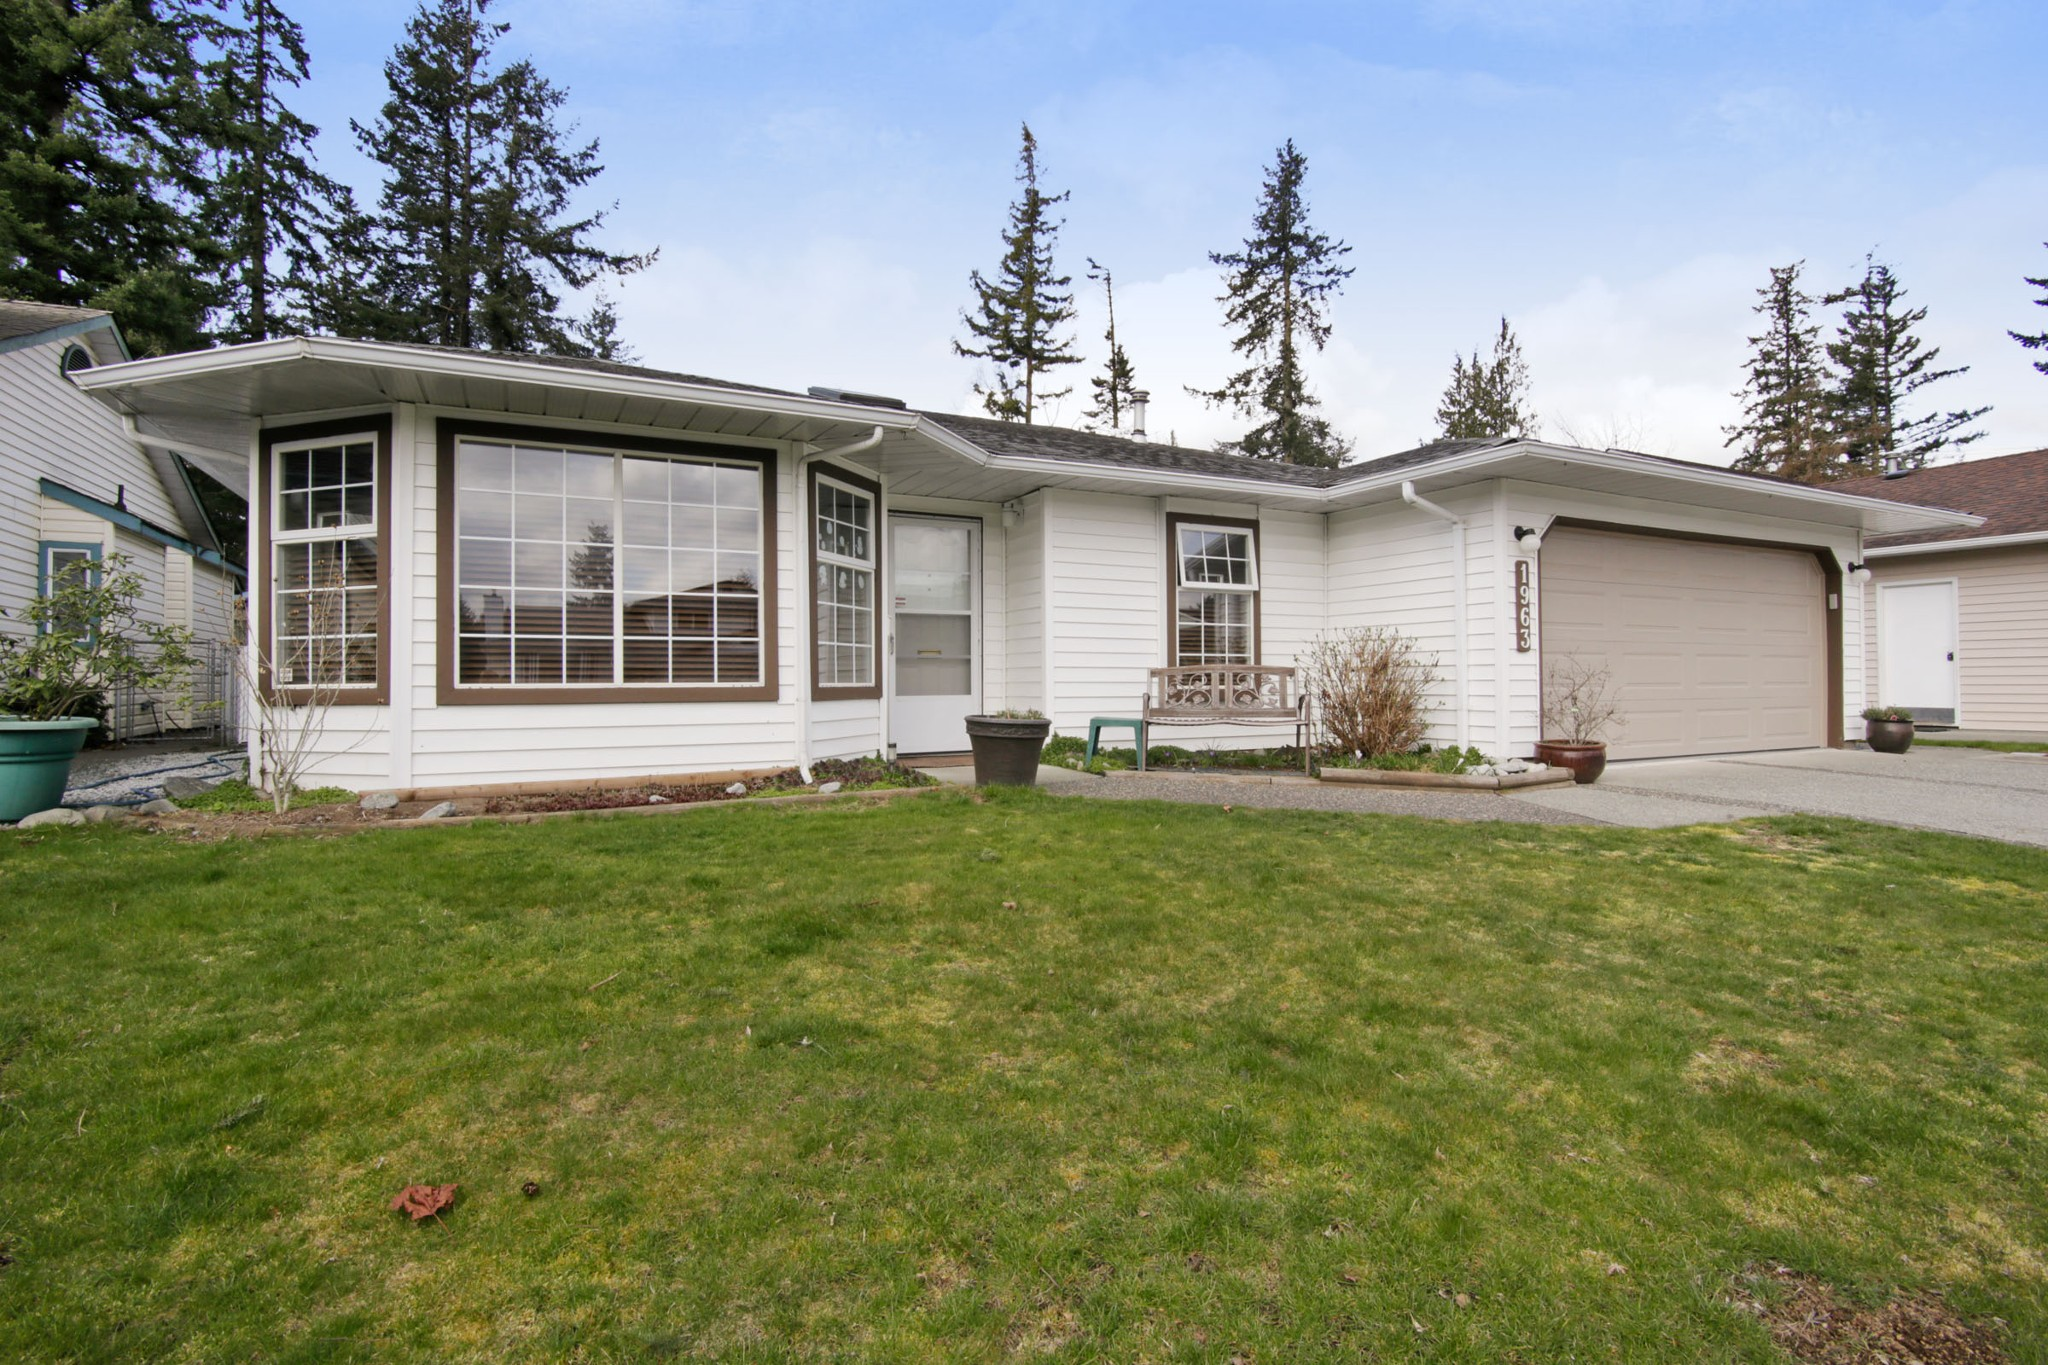 Main Photo: 1963 MAPLEWOOD Place in Abbotsford: Central Abbotsford House for sale : MLS®# R2248919